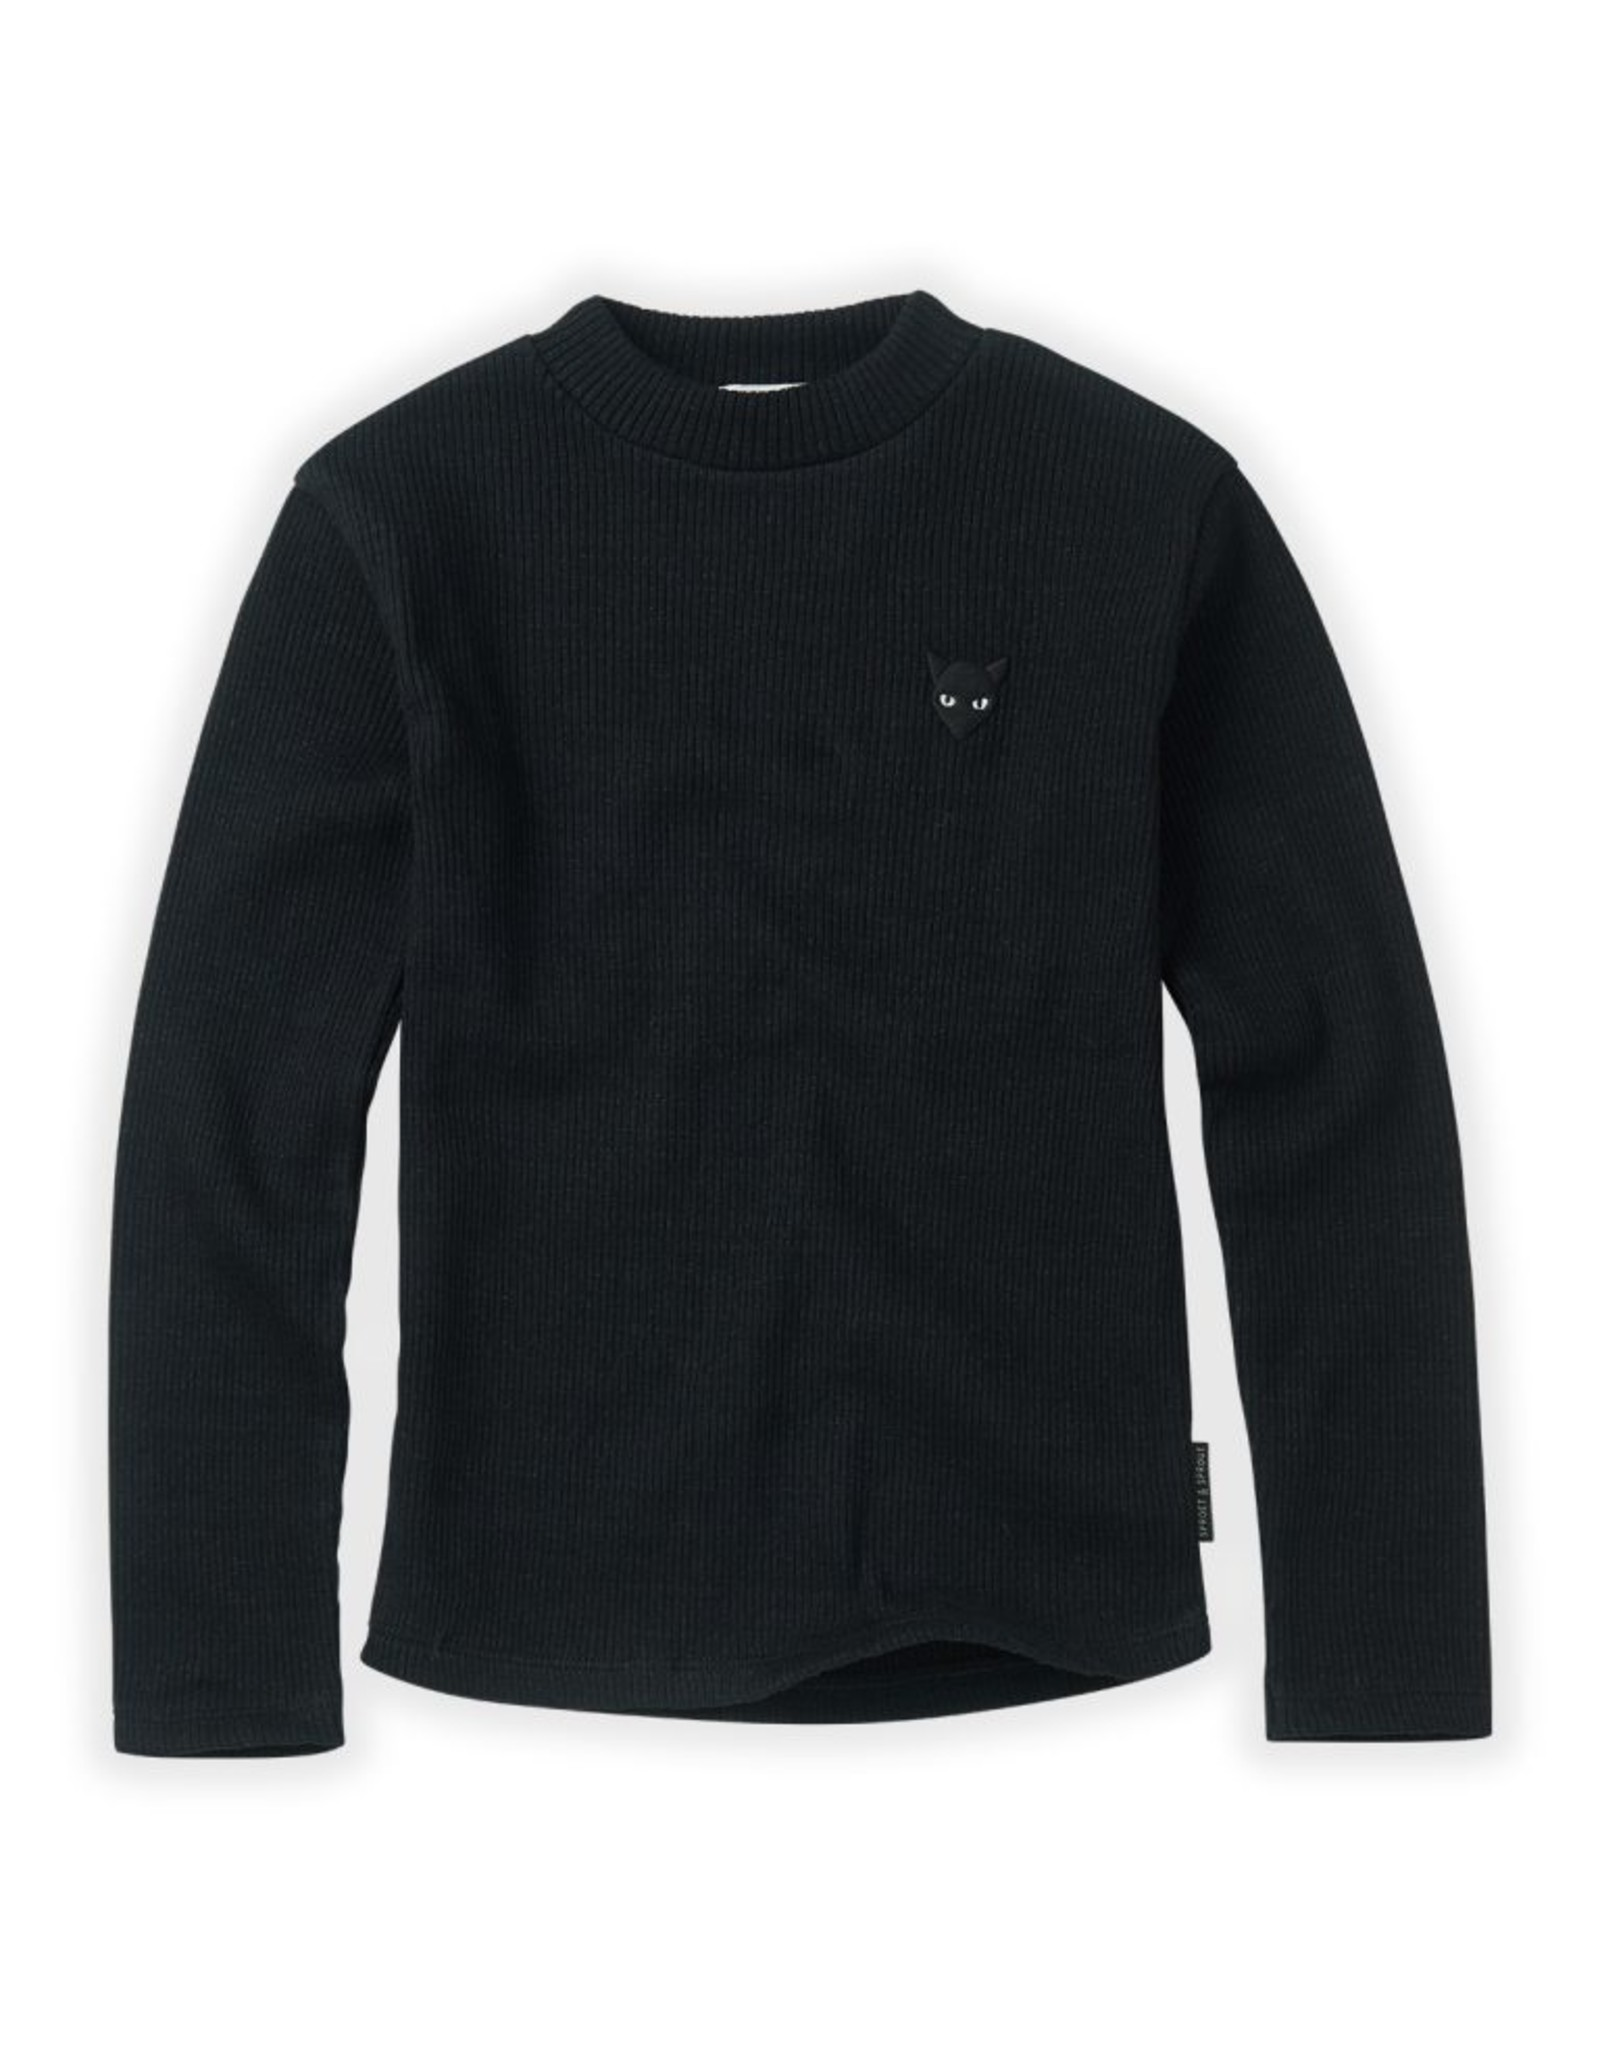 Sproet & Sprout Sproet & Sprout Turtle Neck Rib Black BASIC